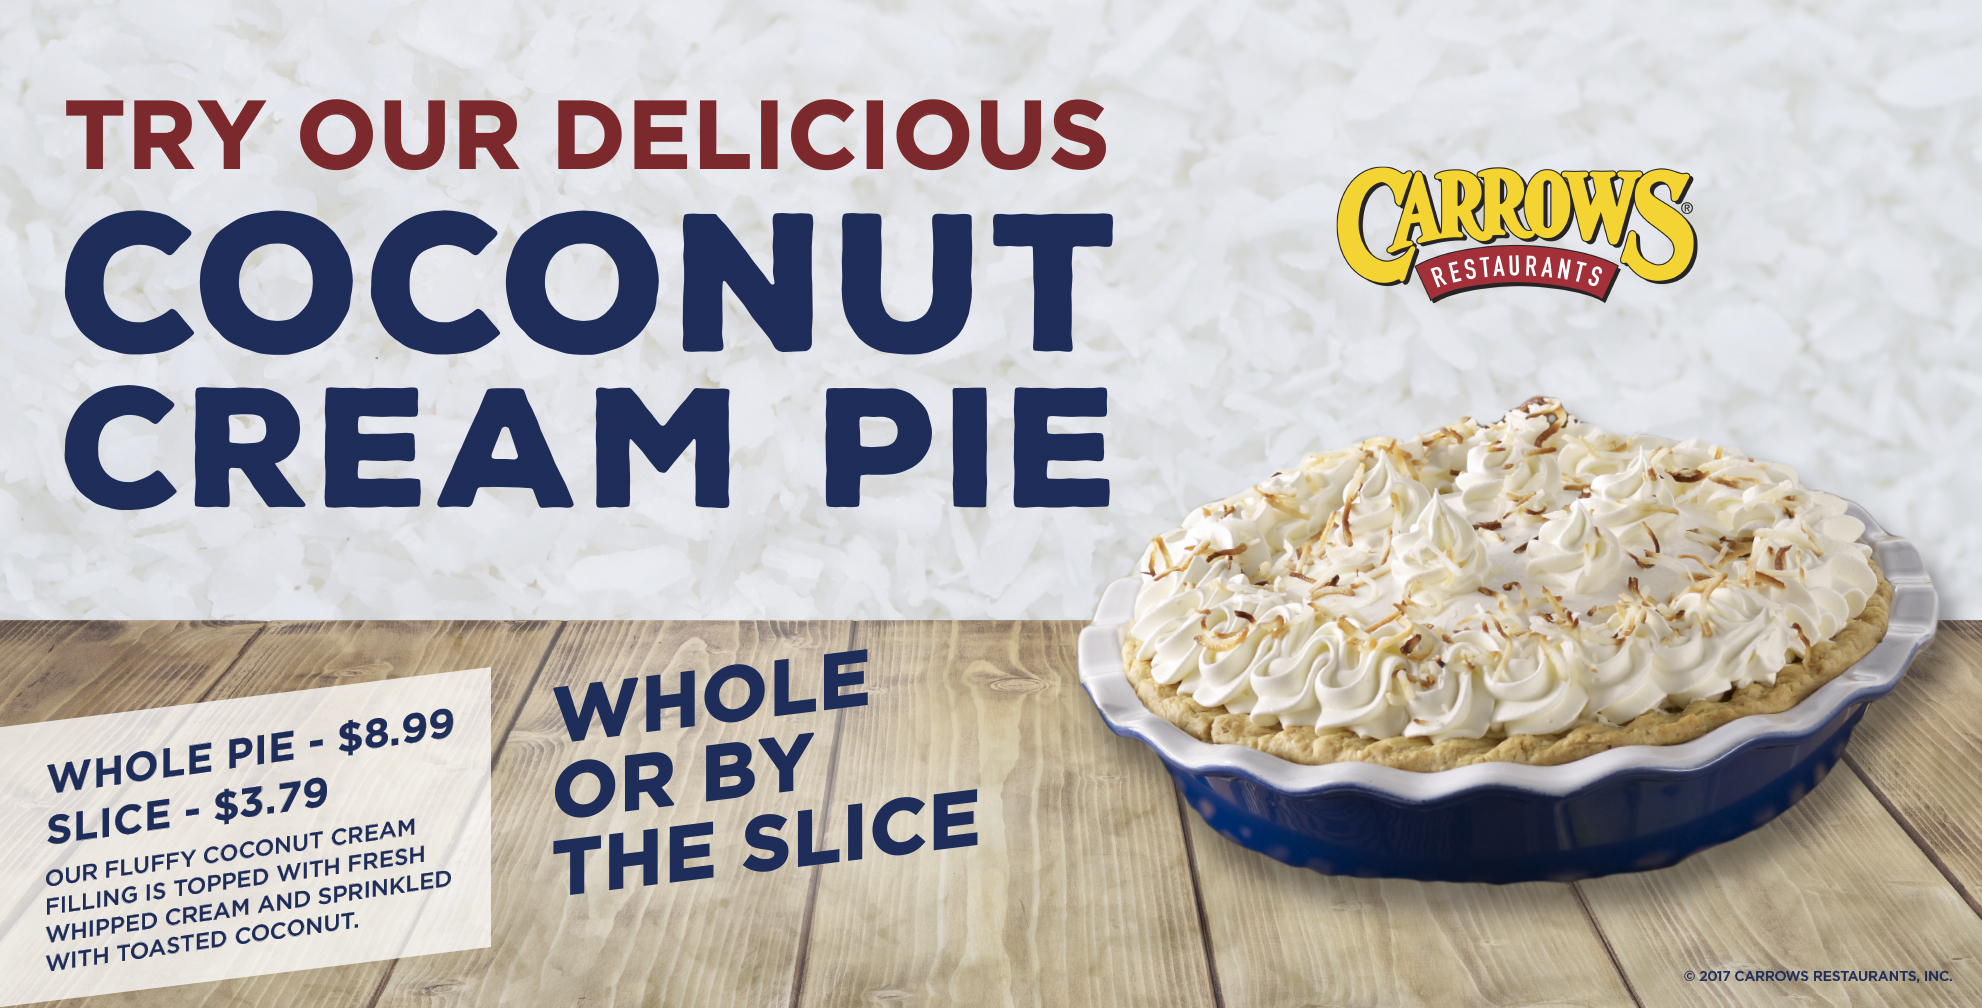 Try Our Delicious Coconut Cream Pie. Whole pie is $8.99, slice $3.79